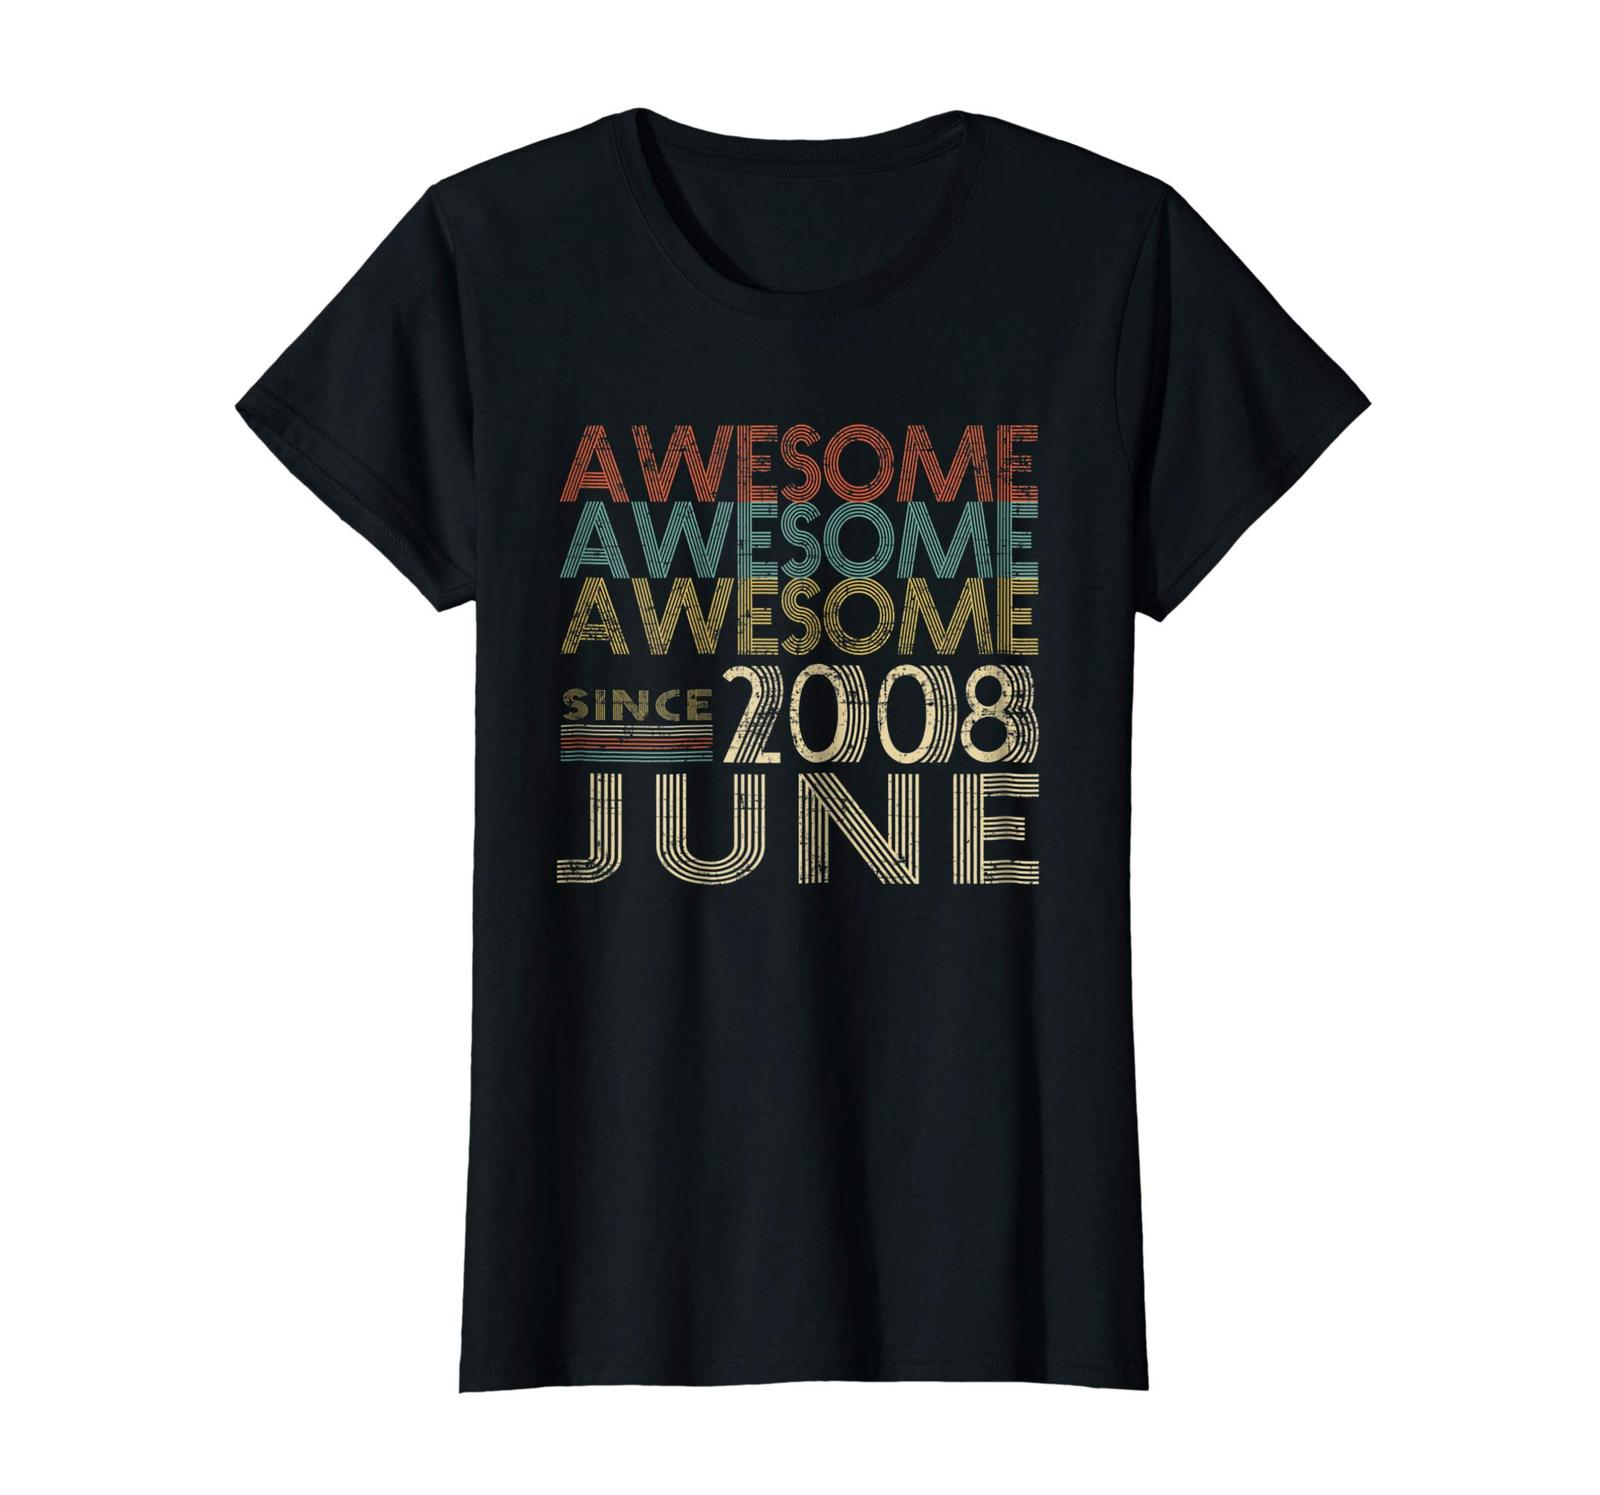 Dad Shirts - Legends Born In Awesome Since JUNE 2008 10 Years Old Being Wowen